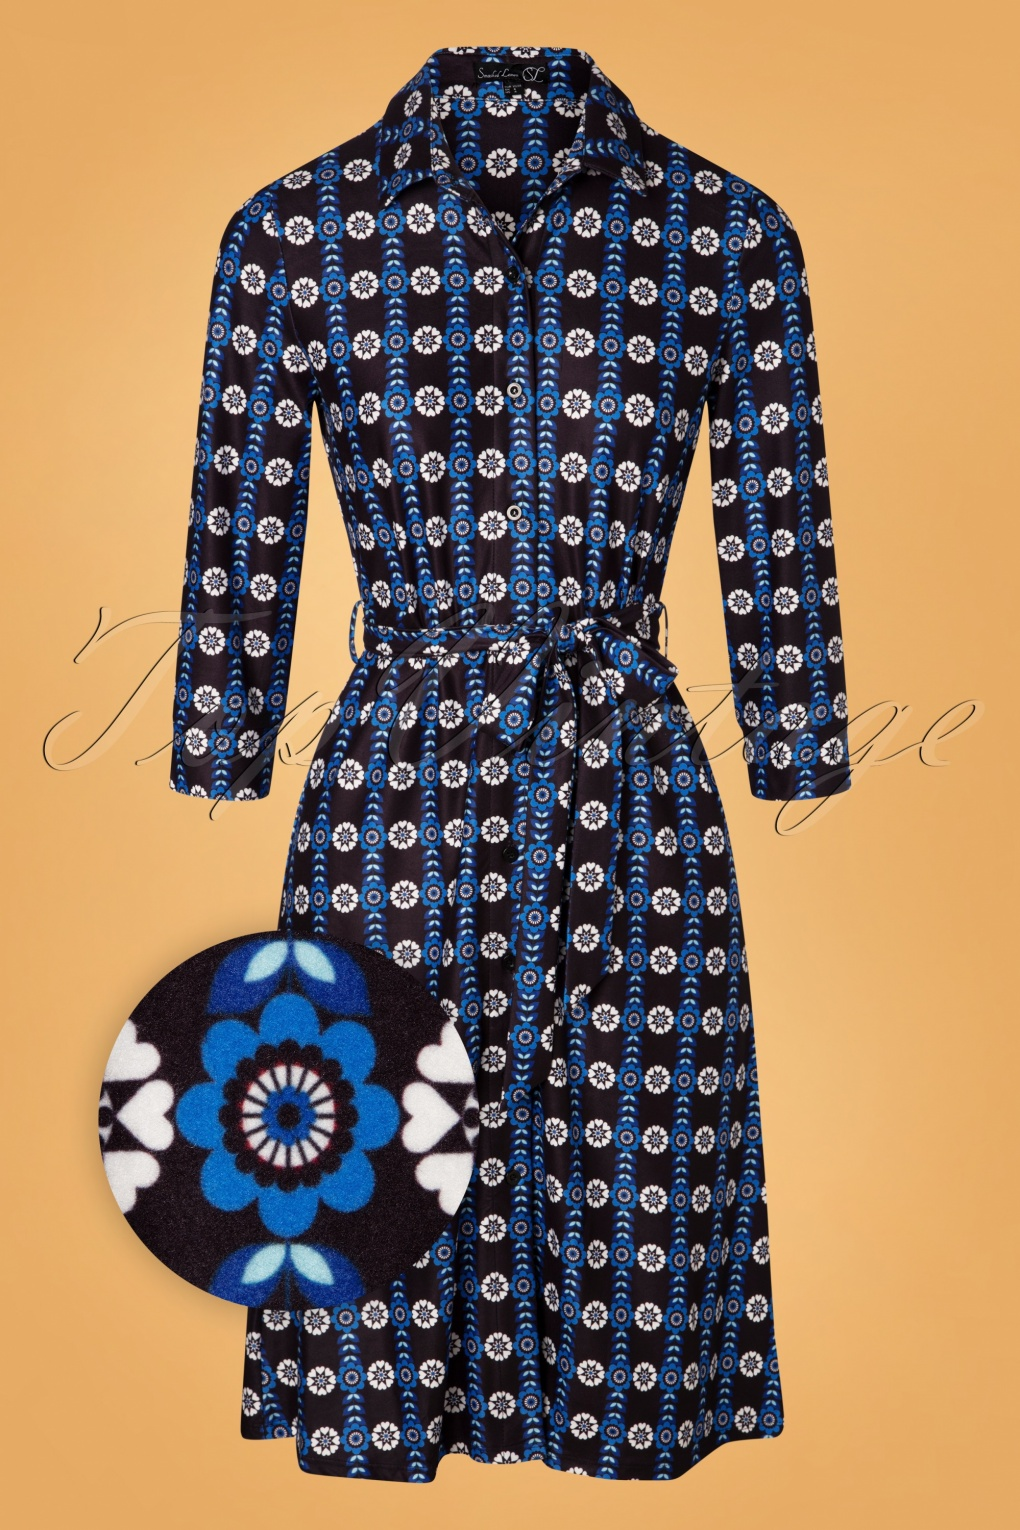 60s Dresses | 1960s Dresses Mod, Mini, Hippie 60s Cara Floral  A-Line Dress in Black and Blue £63.89 AT vintagedancer.com